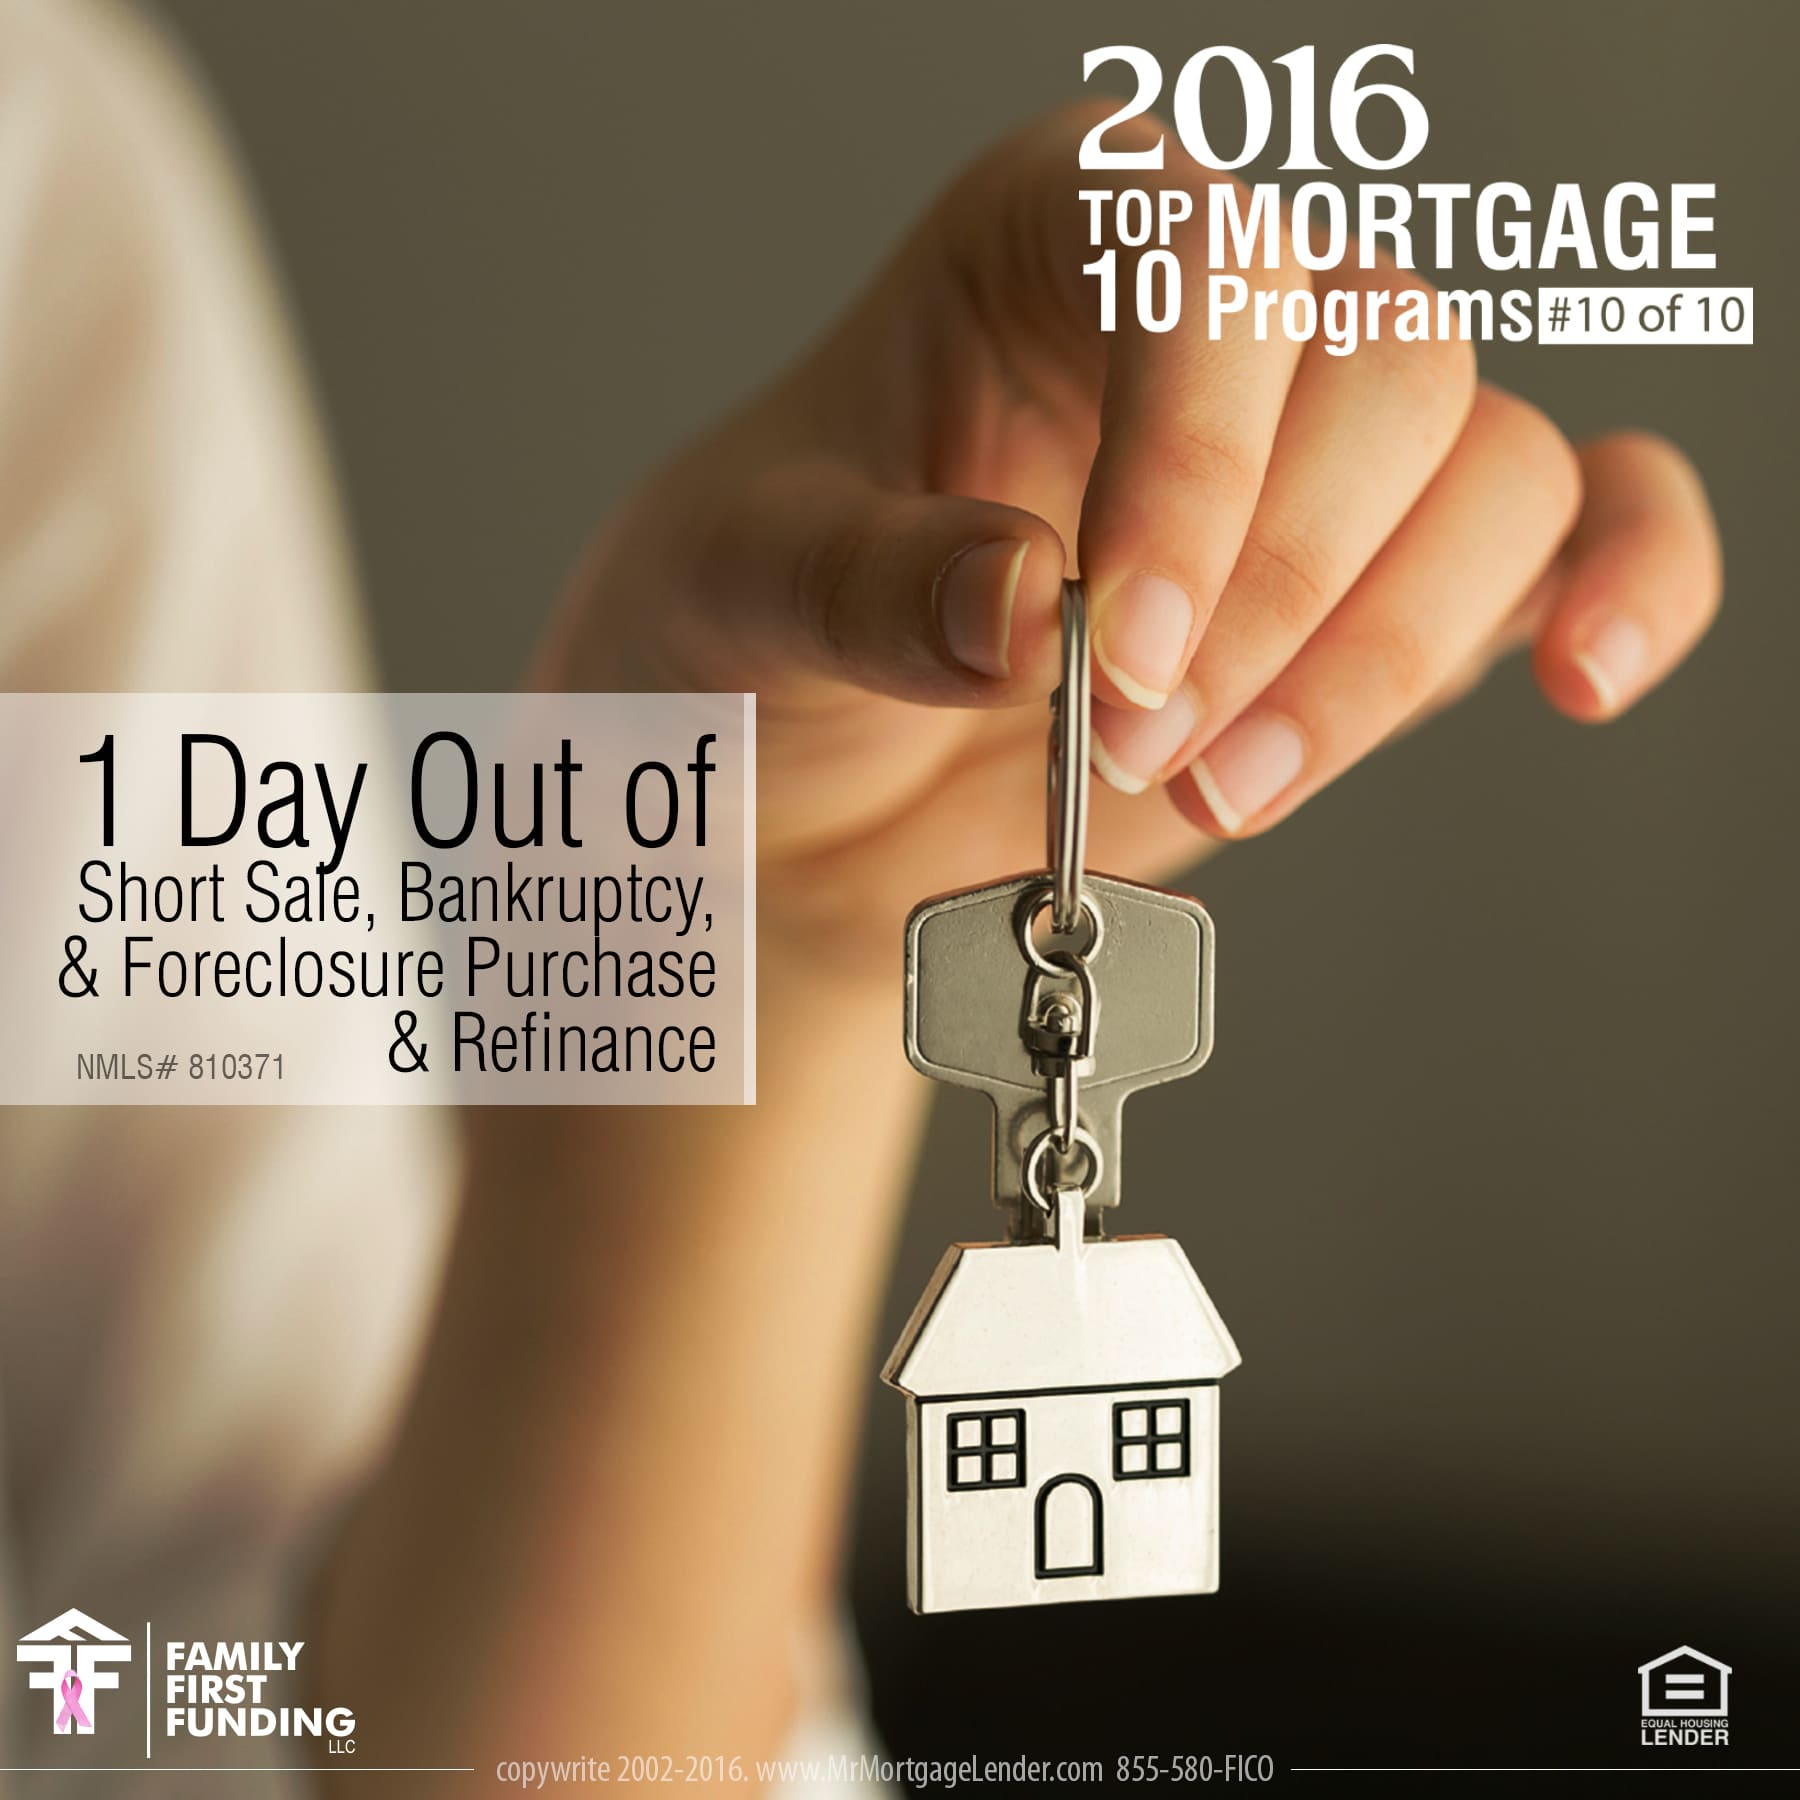 10. 1 Day Out of Short Sale, Bankruptcy, & Foreclosure Purchase & Refinance